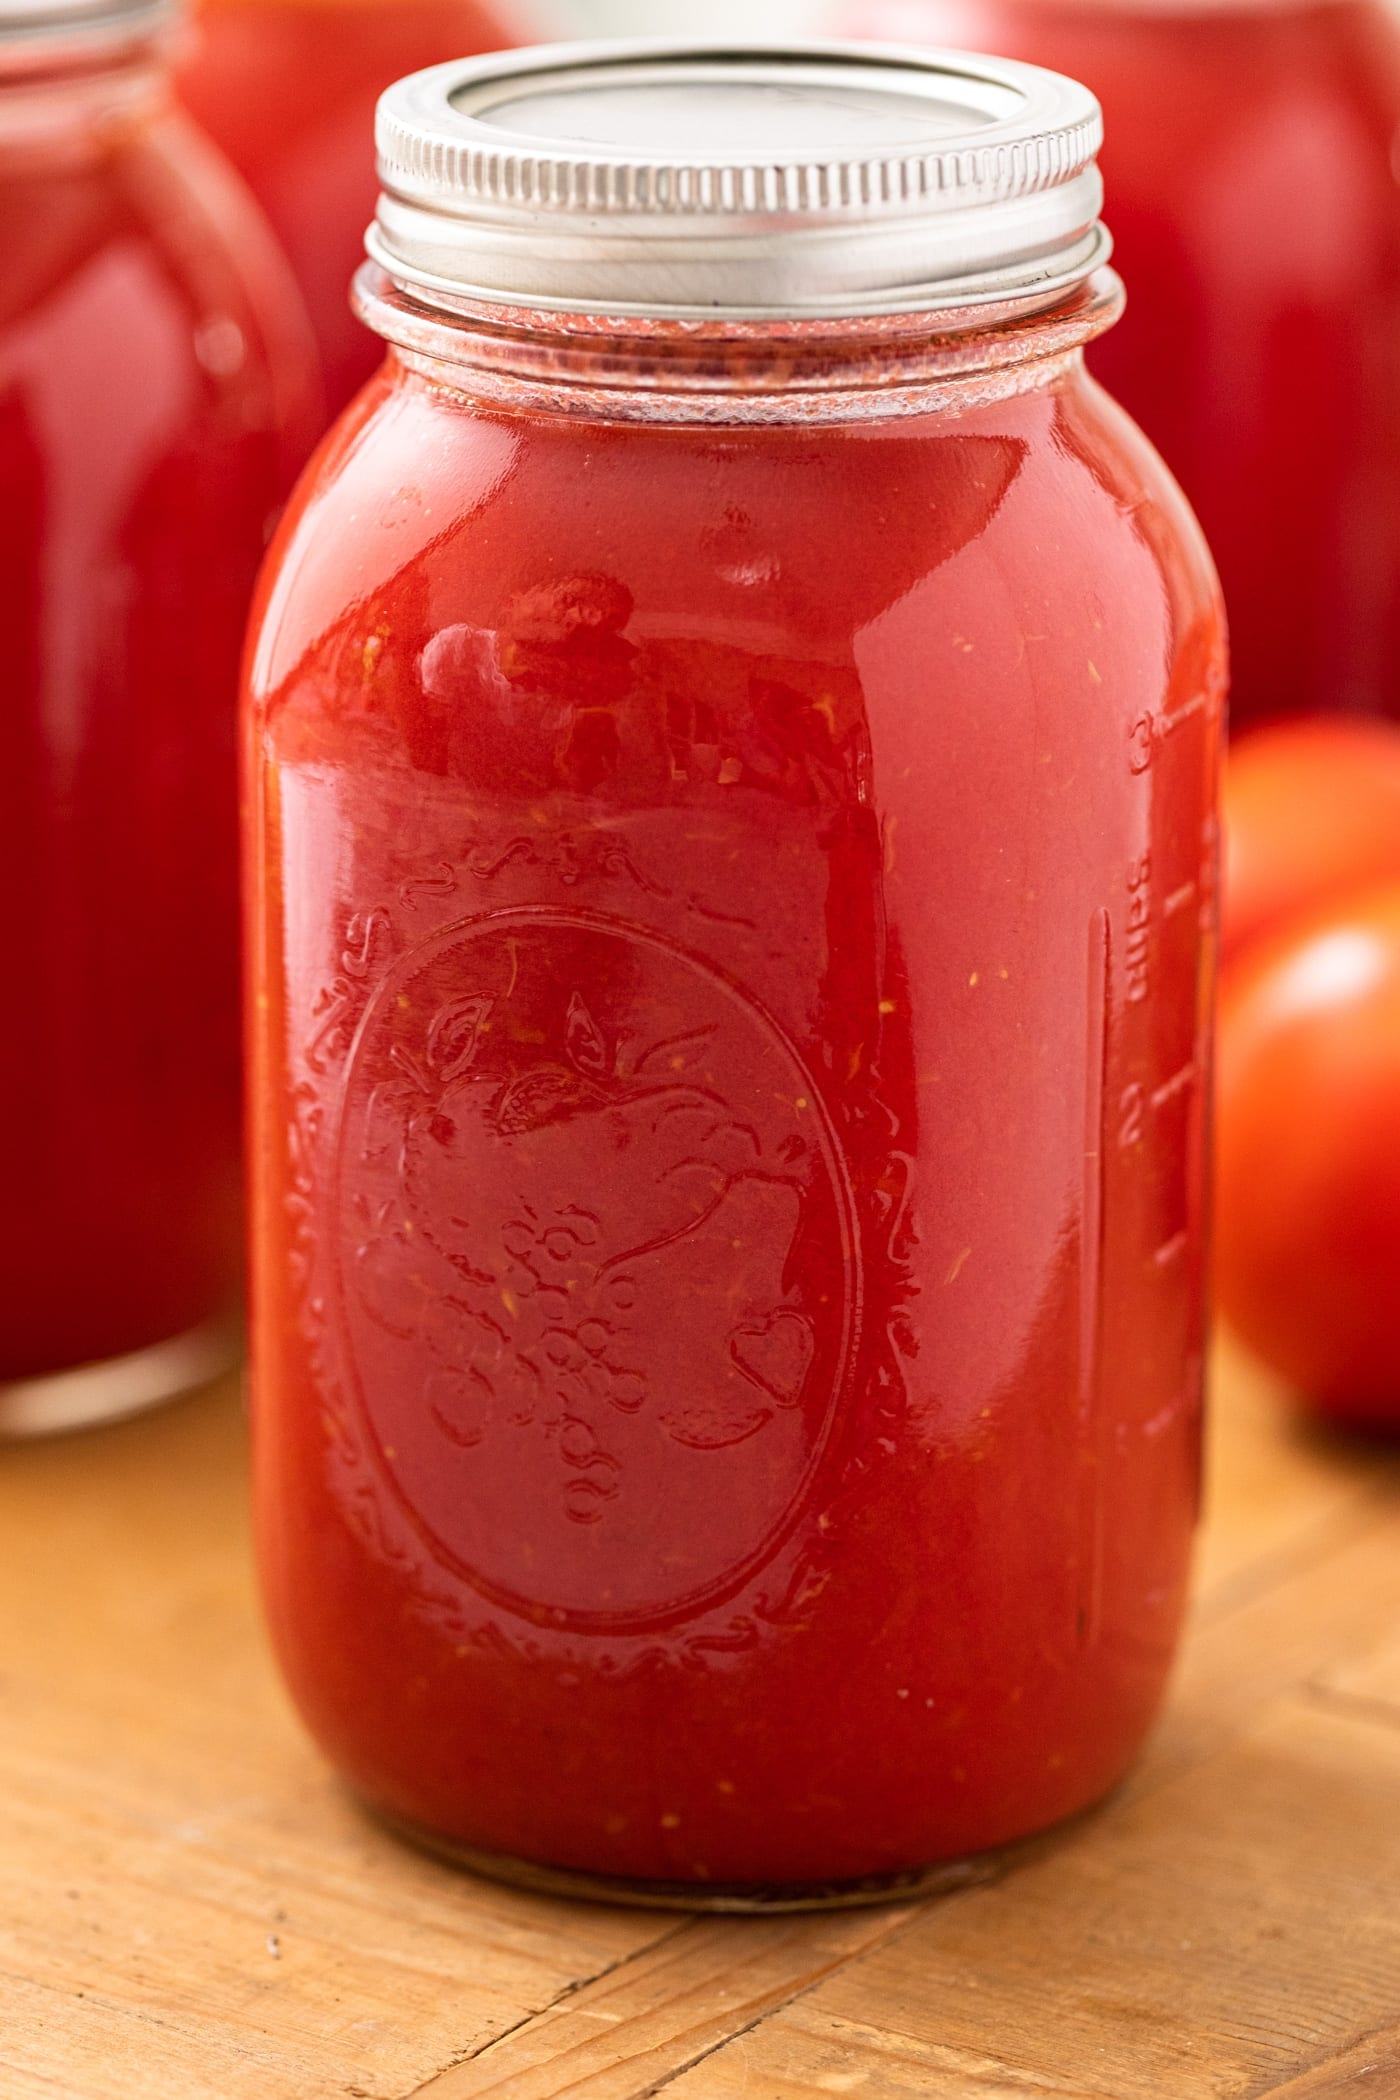 Glass jar filled with tomato juice with lid and ring on top sitting one wooden board